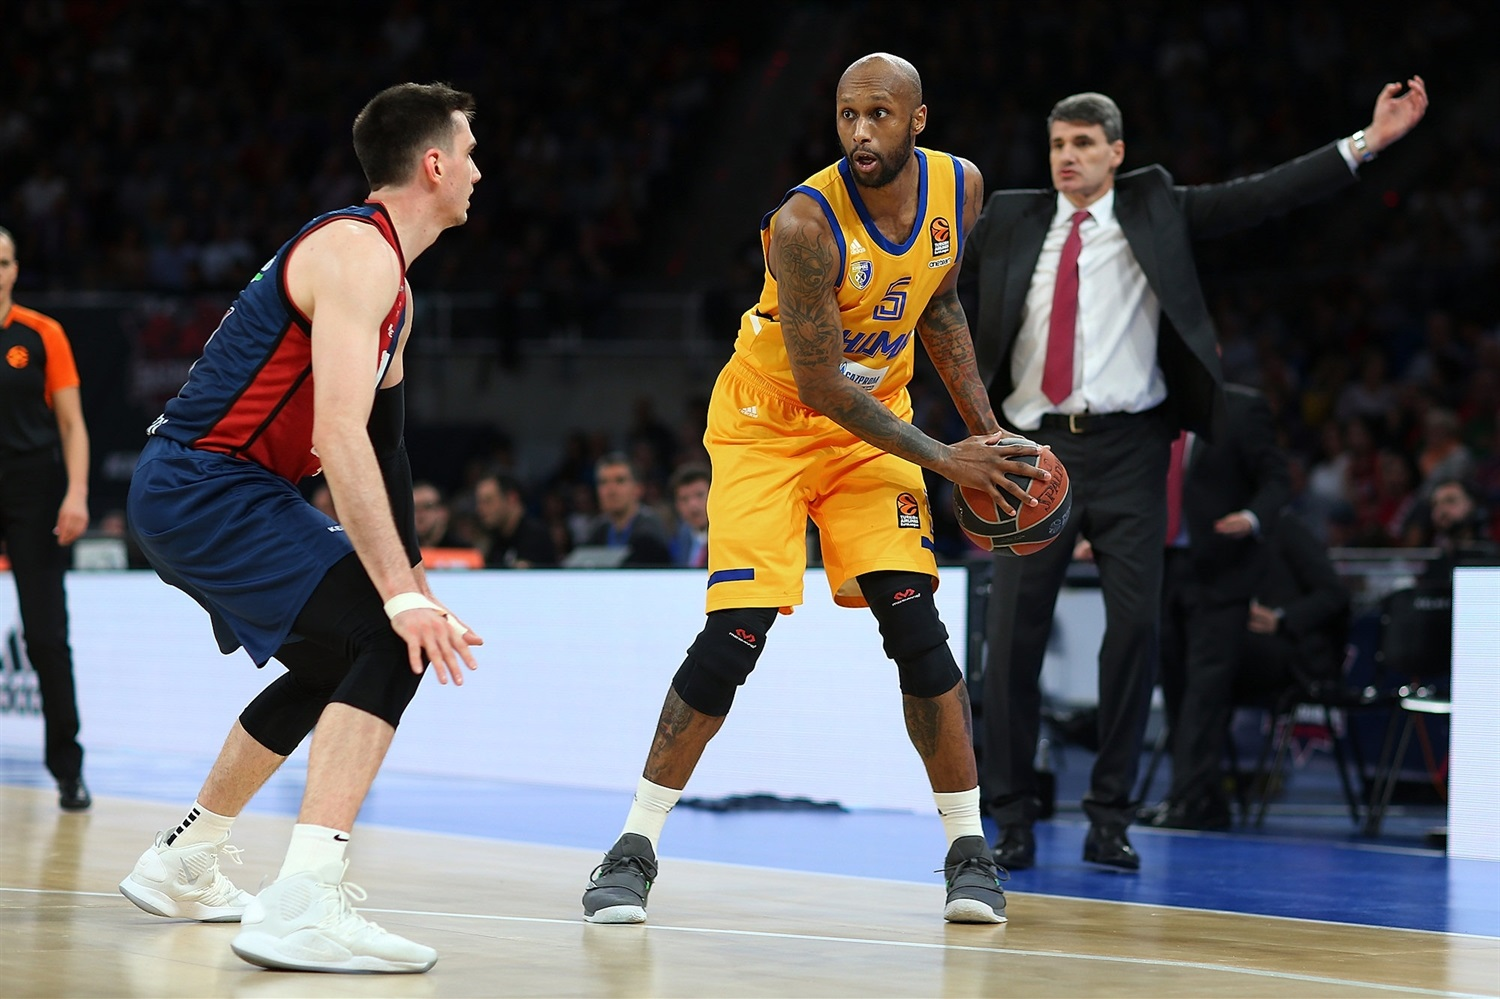 Tony Crocker - Khimki Moscow Region - EB18